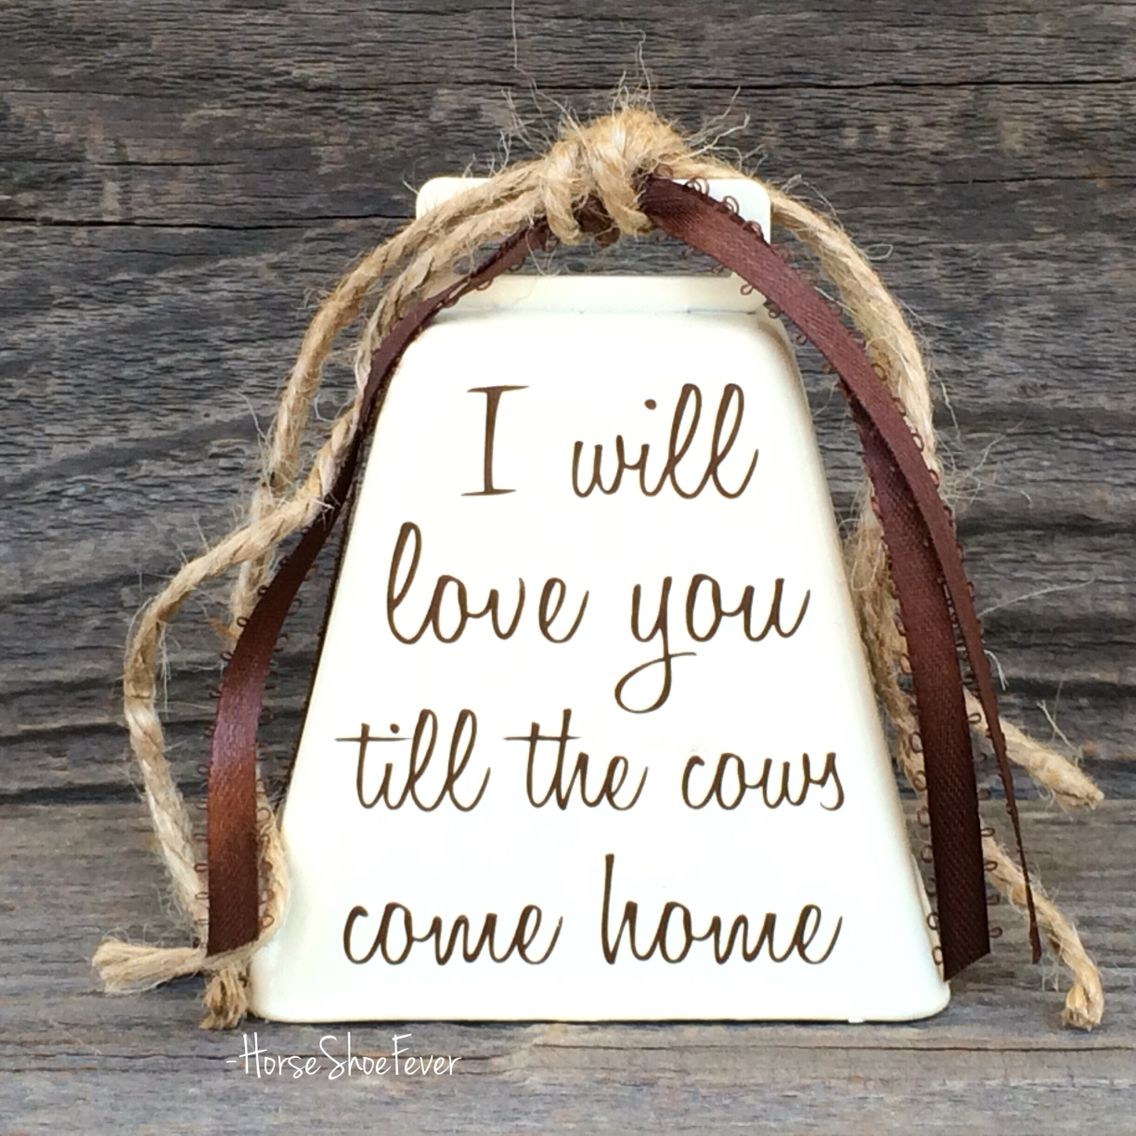 Cowbell Decor. HorseShoeFever On Etsy. Cowgirl, Cowboy, Cattle, Cows, Rustic